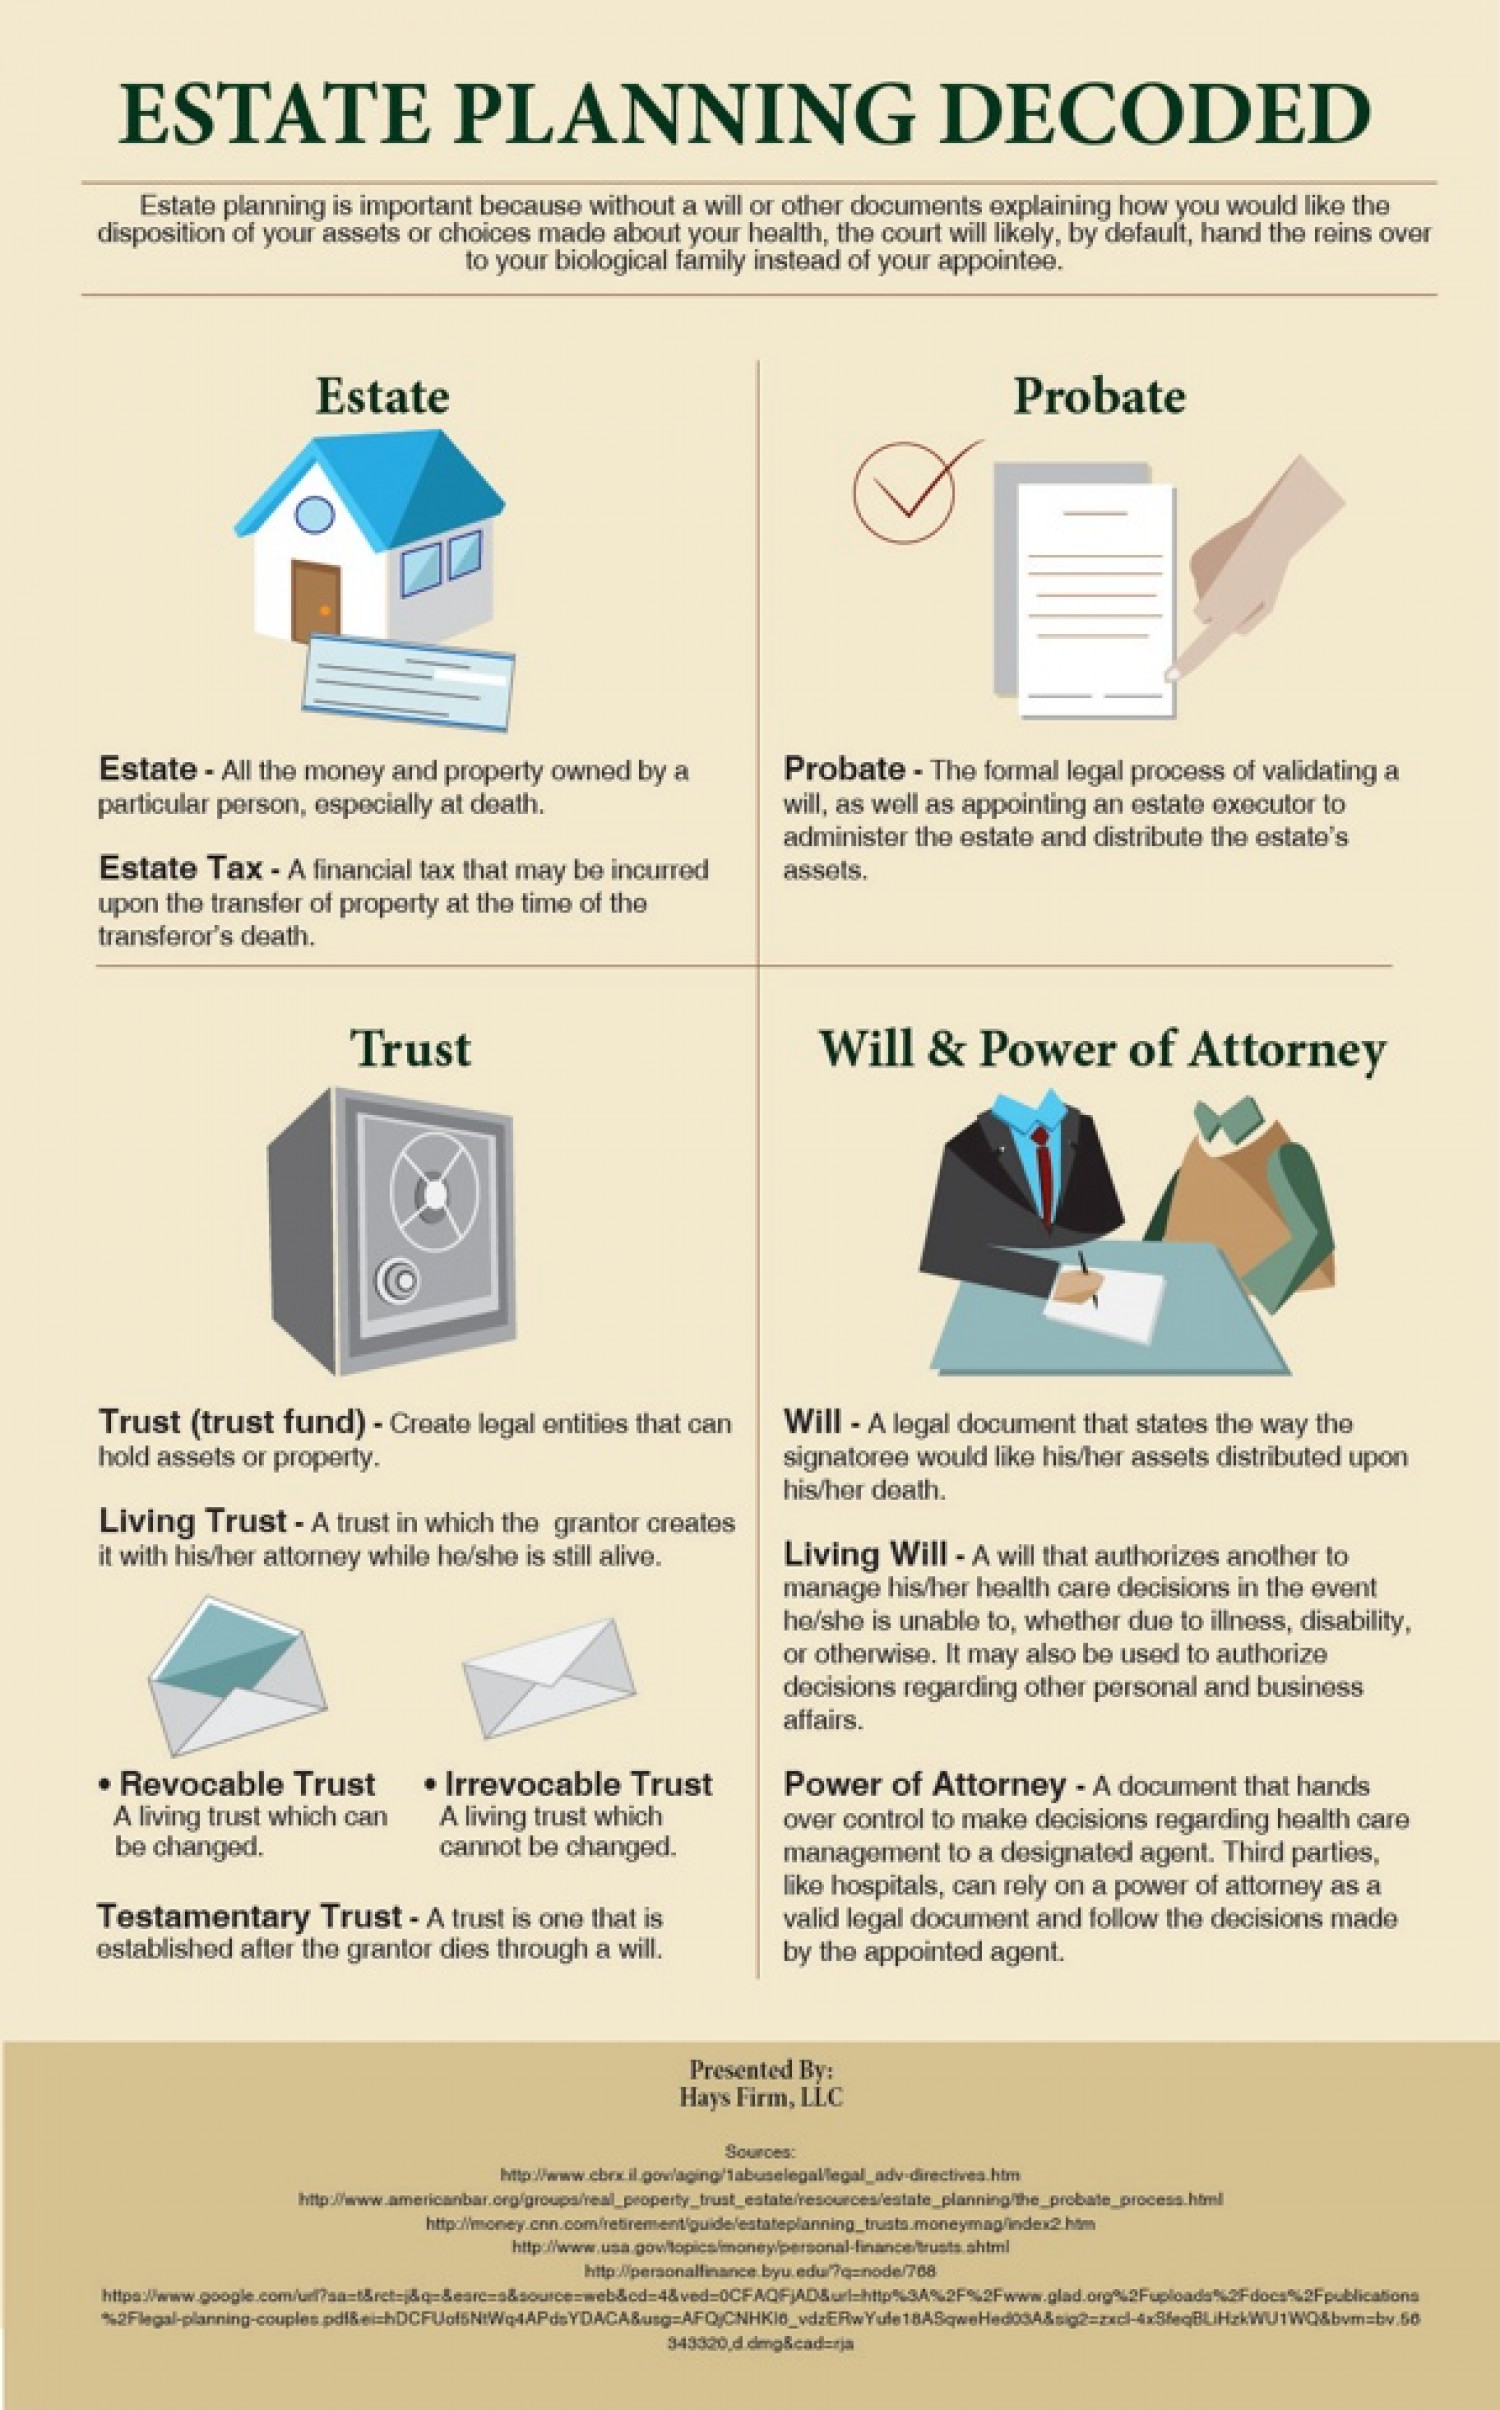 Estate Planning Decoded Infographic